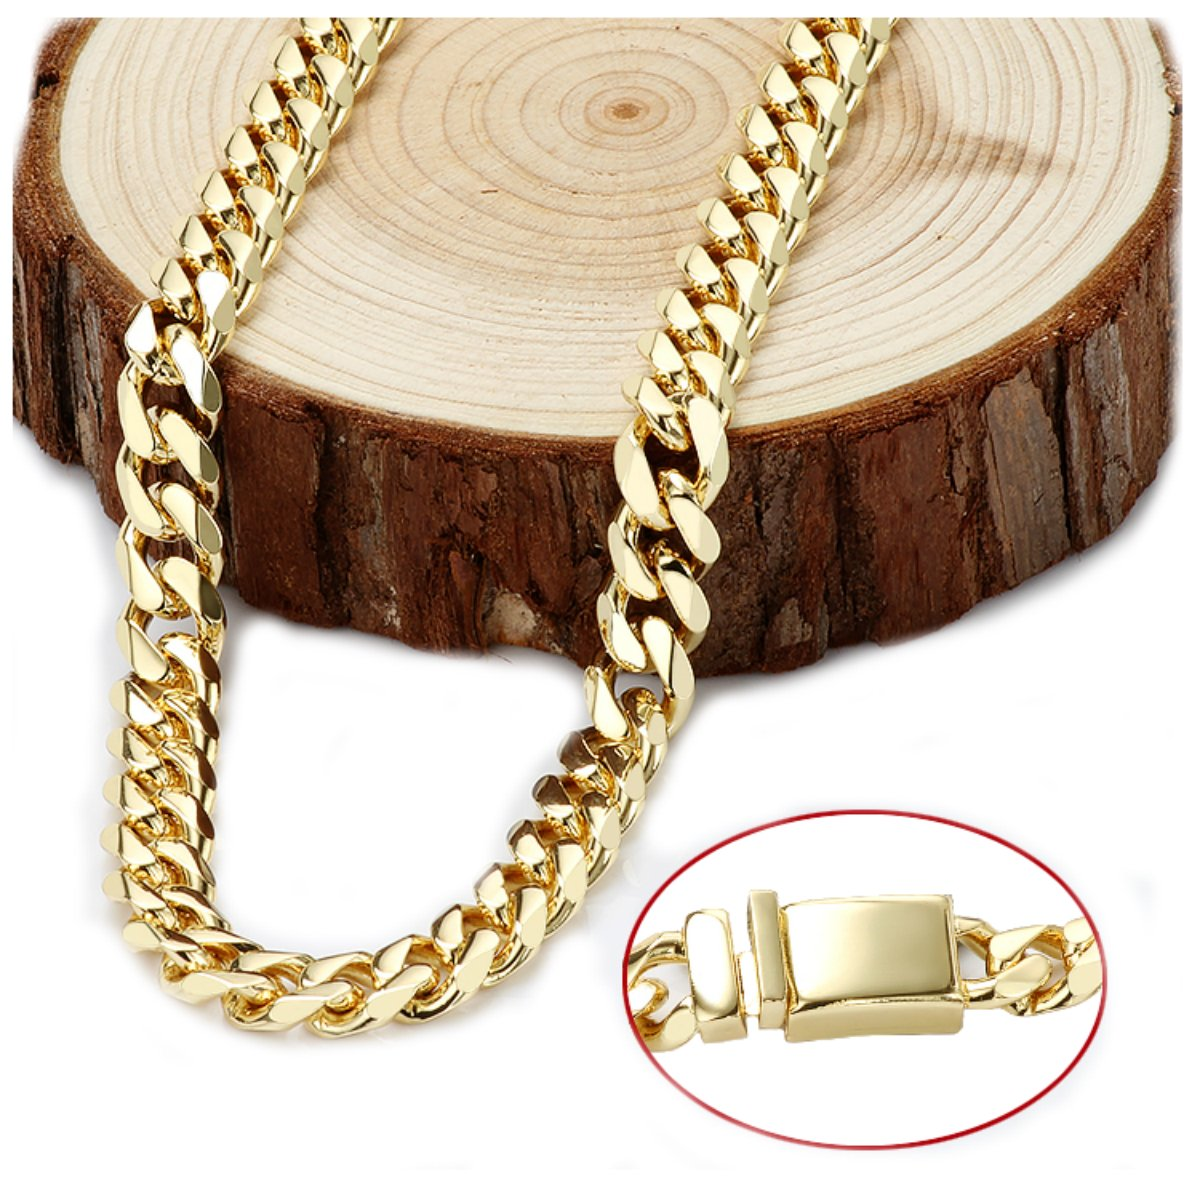 Gold chain necklace 14.5MM 24K Diamond cut Smooth Cuban Link with Warranty Of A LifeTimeLifetime USA made (28) by 14k Diamond Cut Smooth Cuban (Image #6)